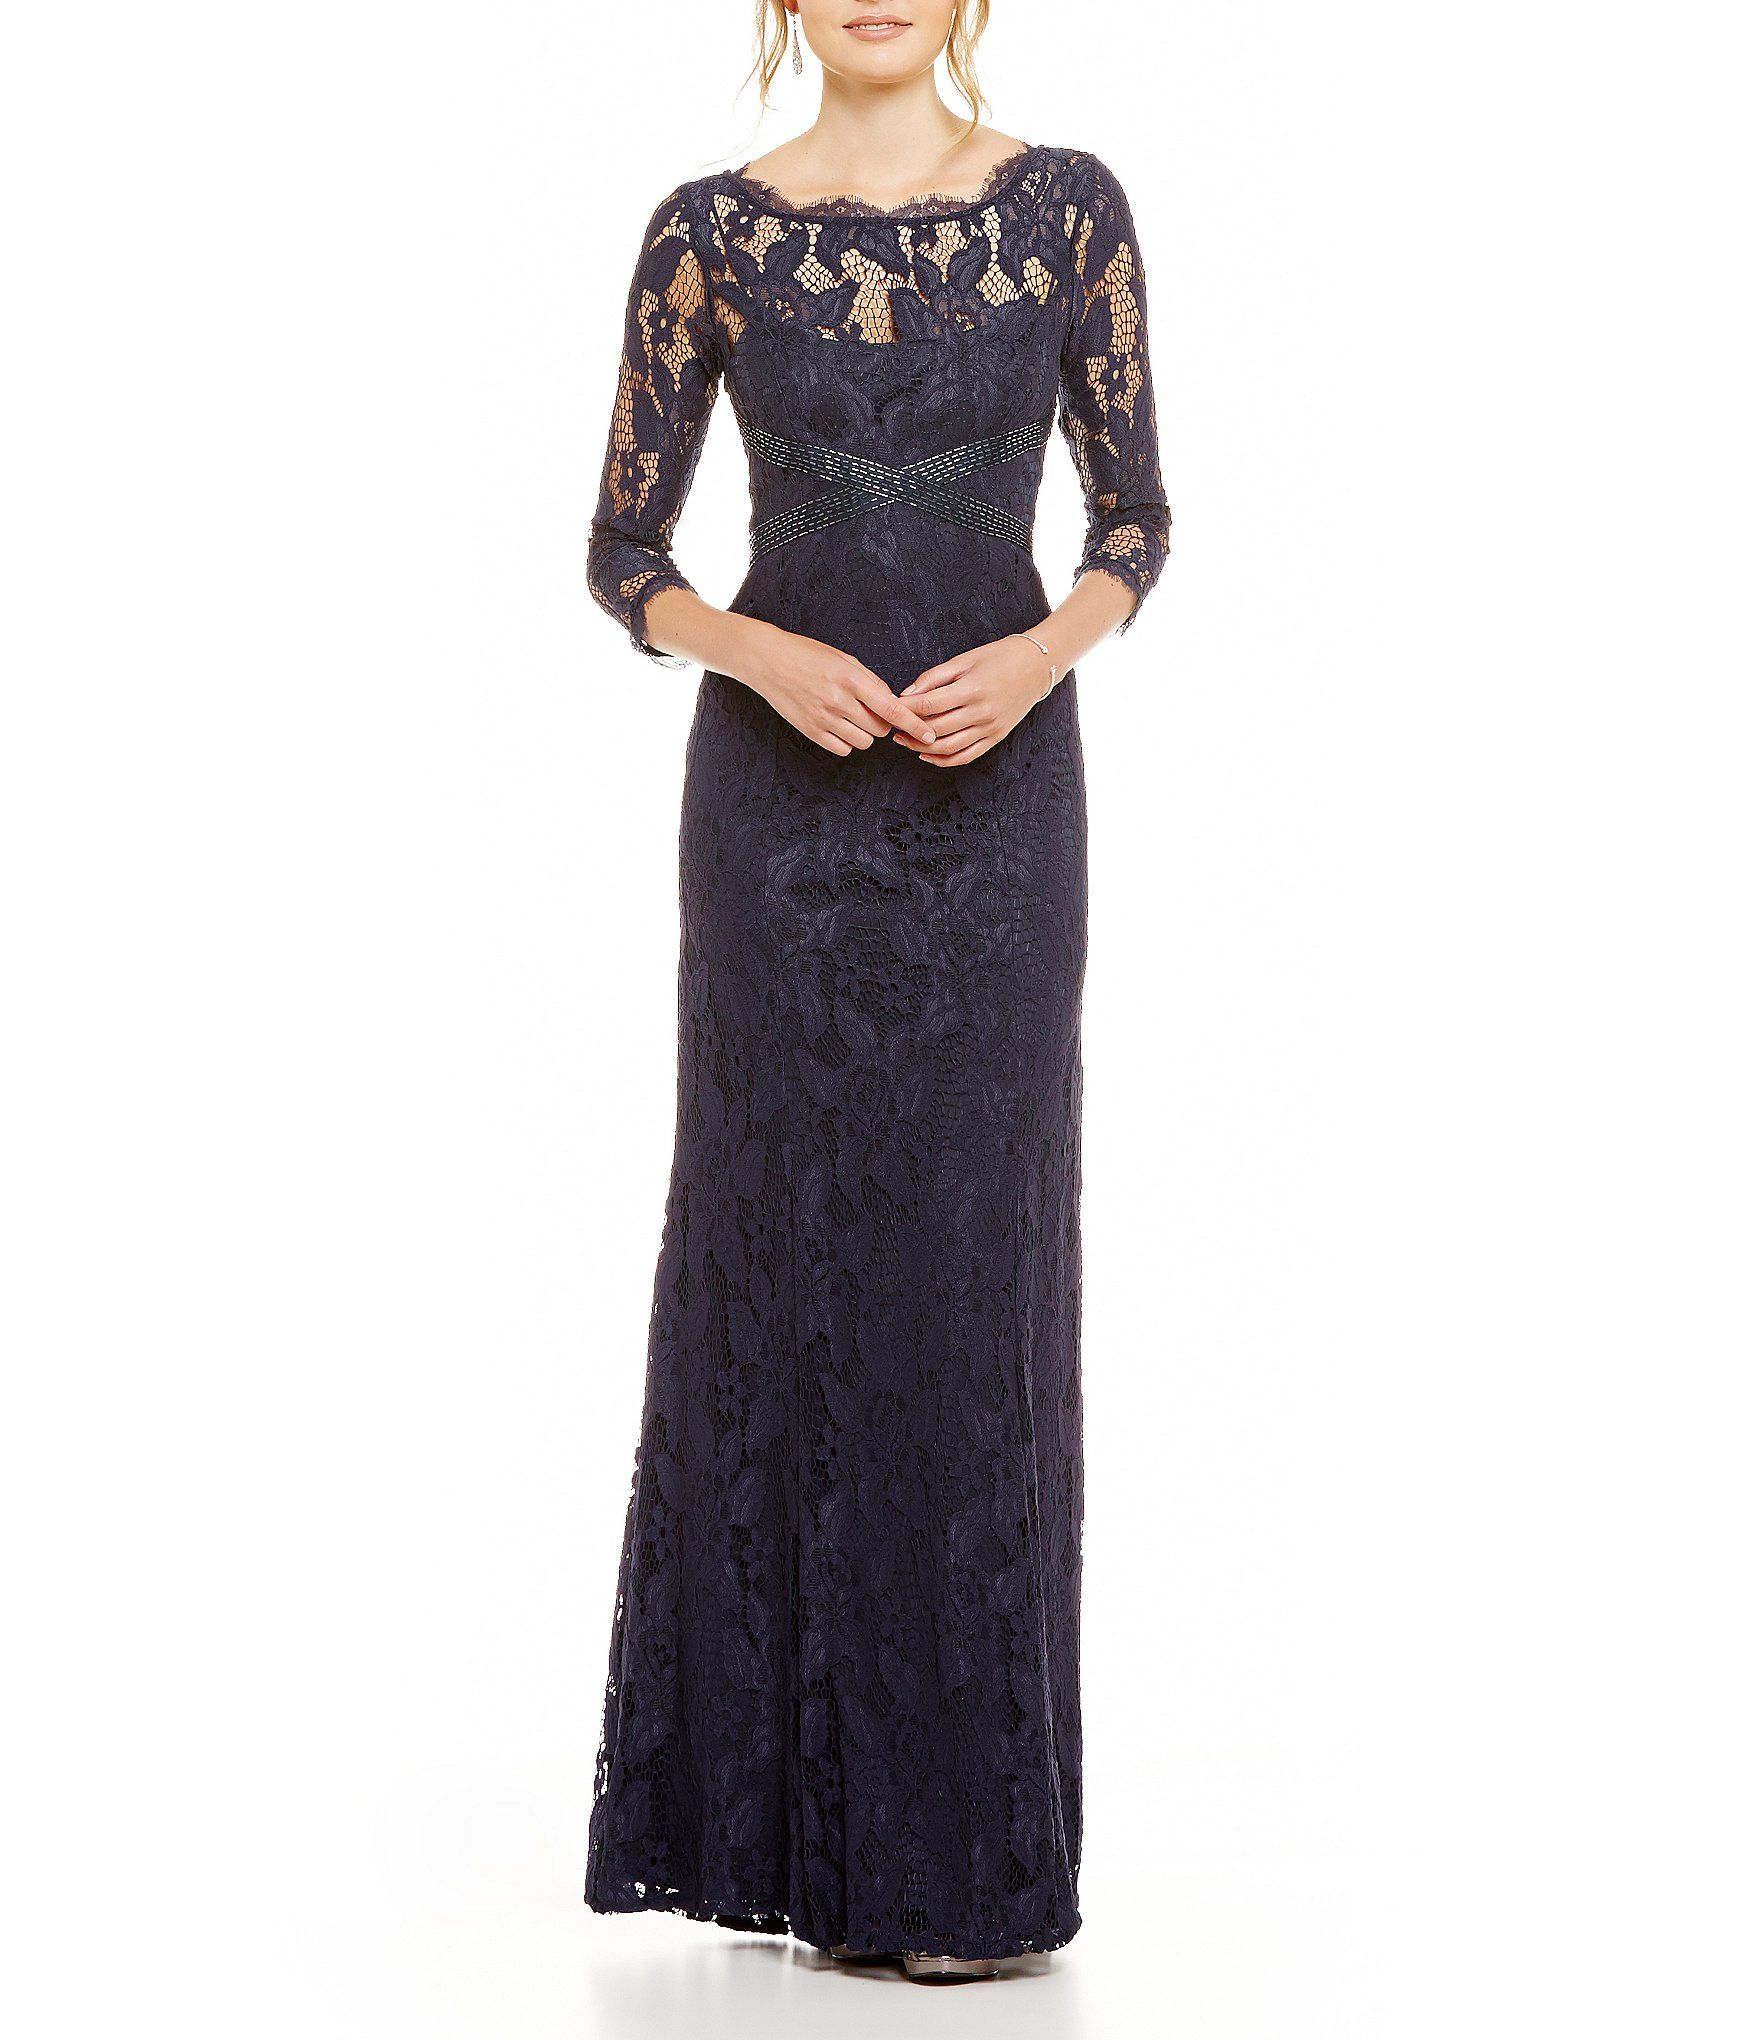 1594e277fdd Shop for Adrianna Papell Beaded Lace 3 4 Sleeve Gown at Dillards.com. Visit  Dillards.com to find clothing